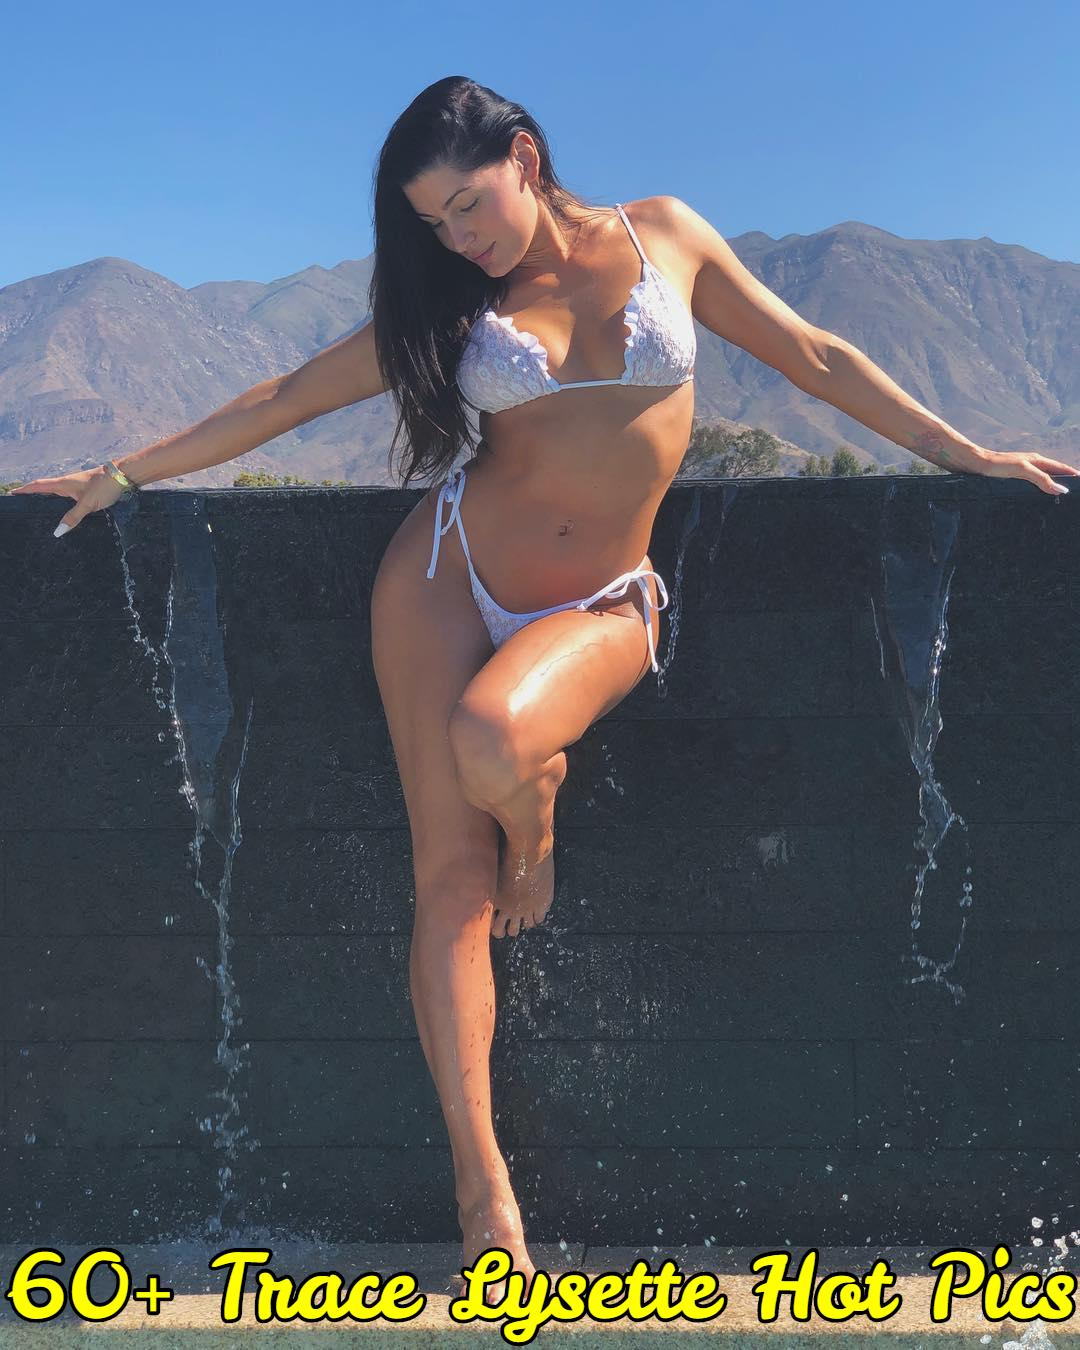 trace lysette hot pics